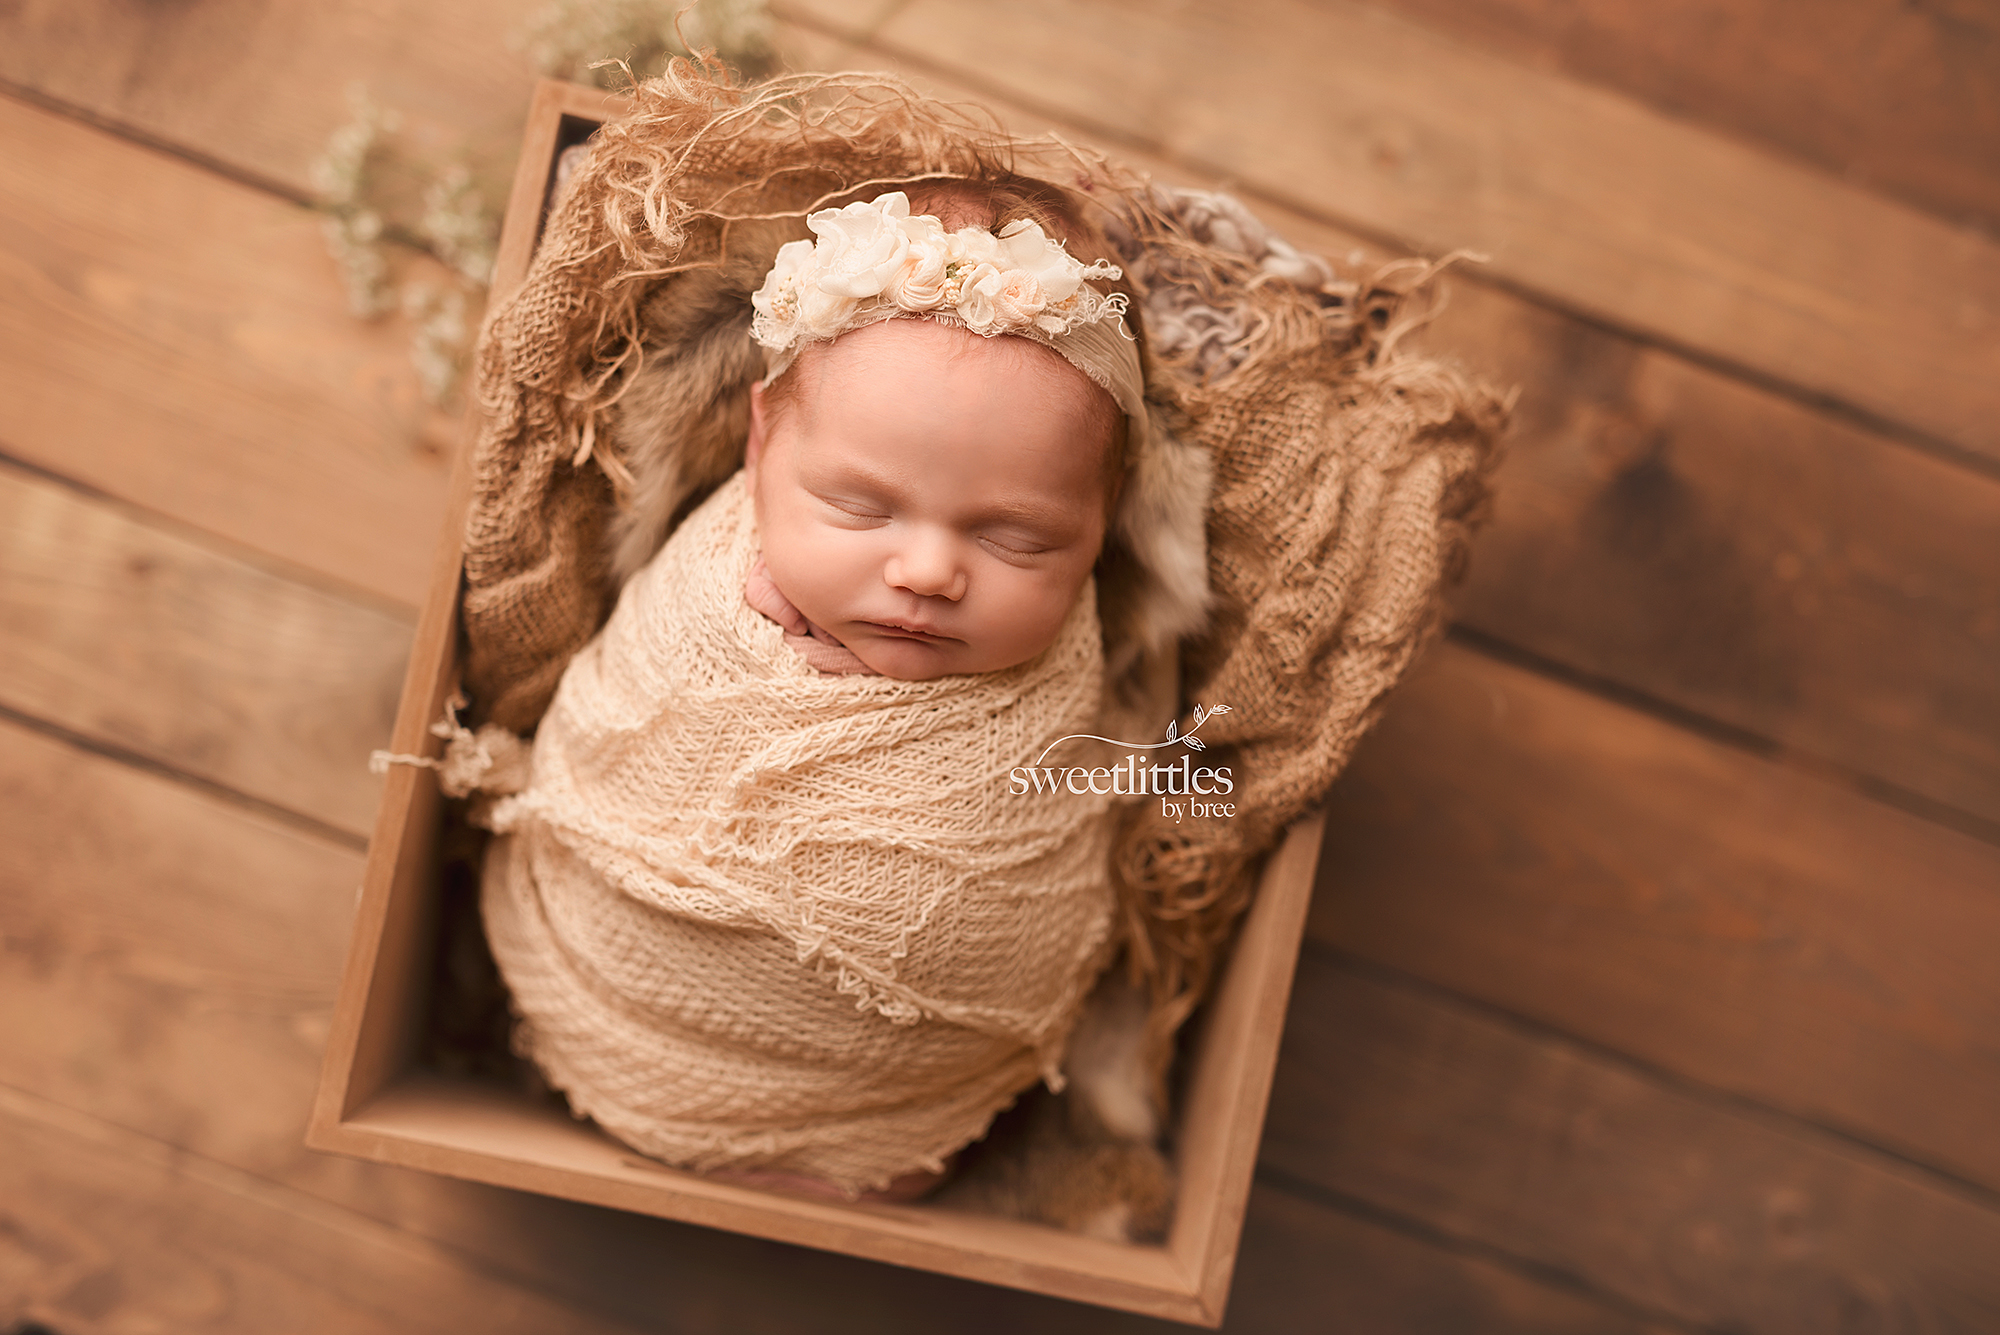 sweet littles small gallery 1 - Newborn Sessions